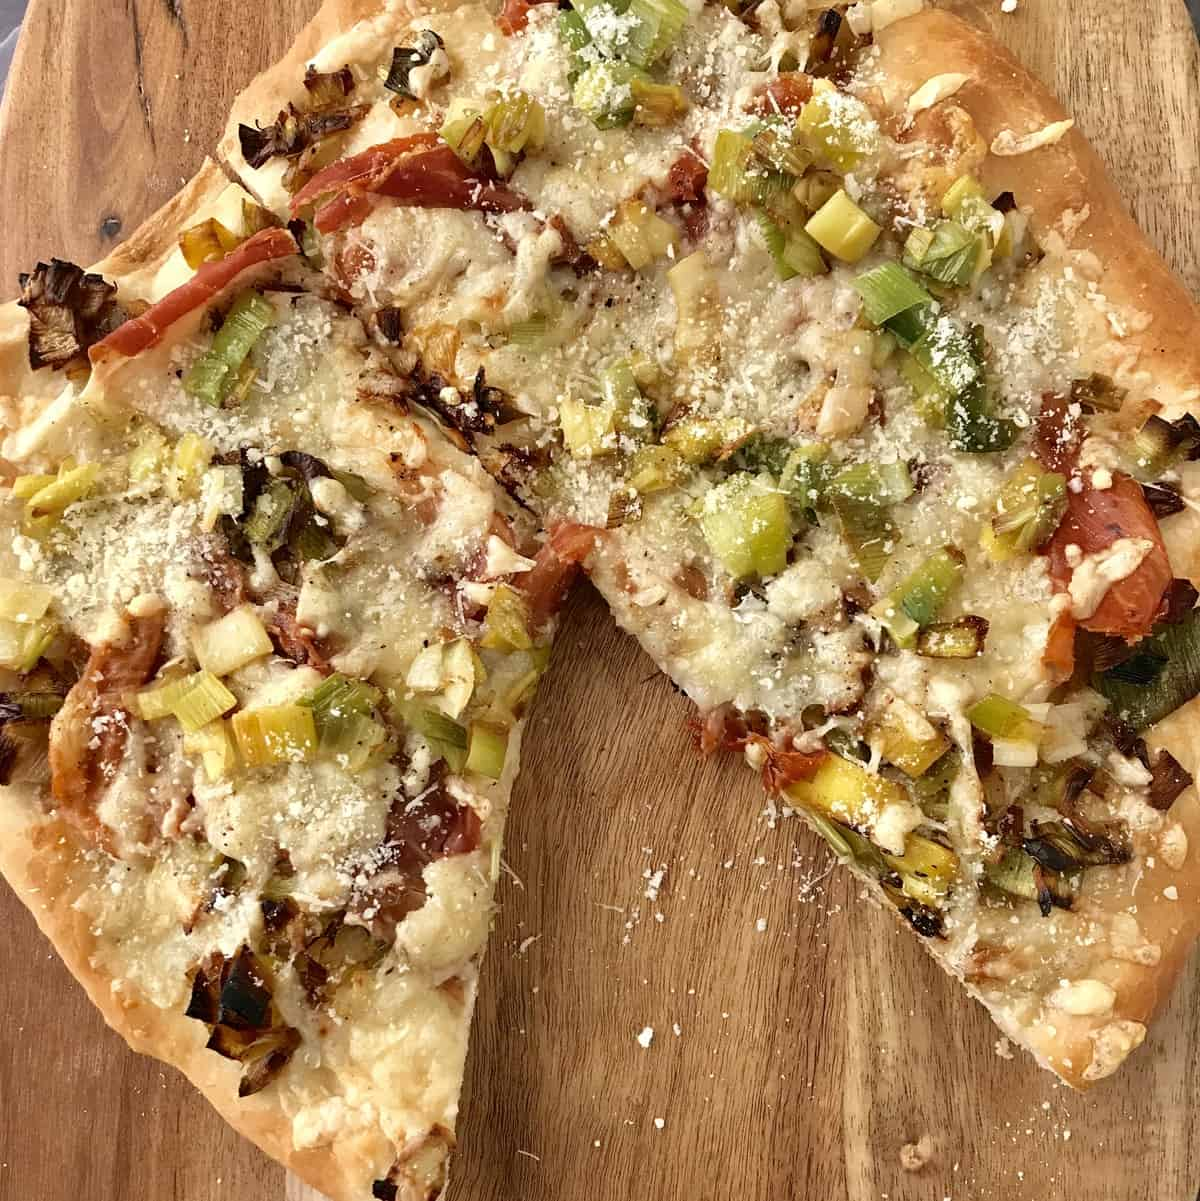 Prosciutto, Leek and Gruyere Pizza